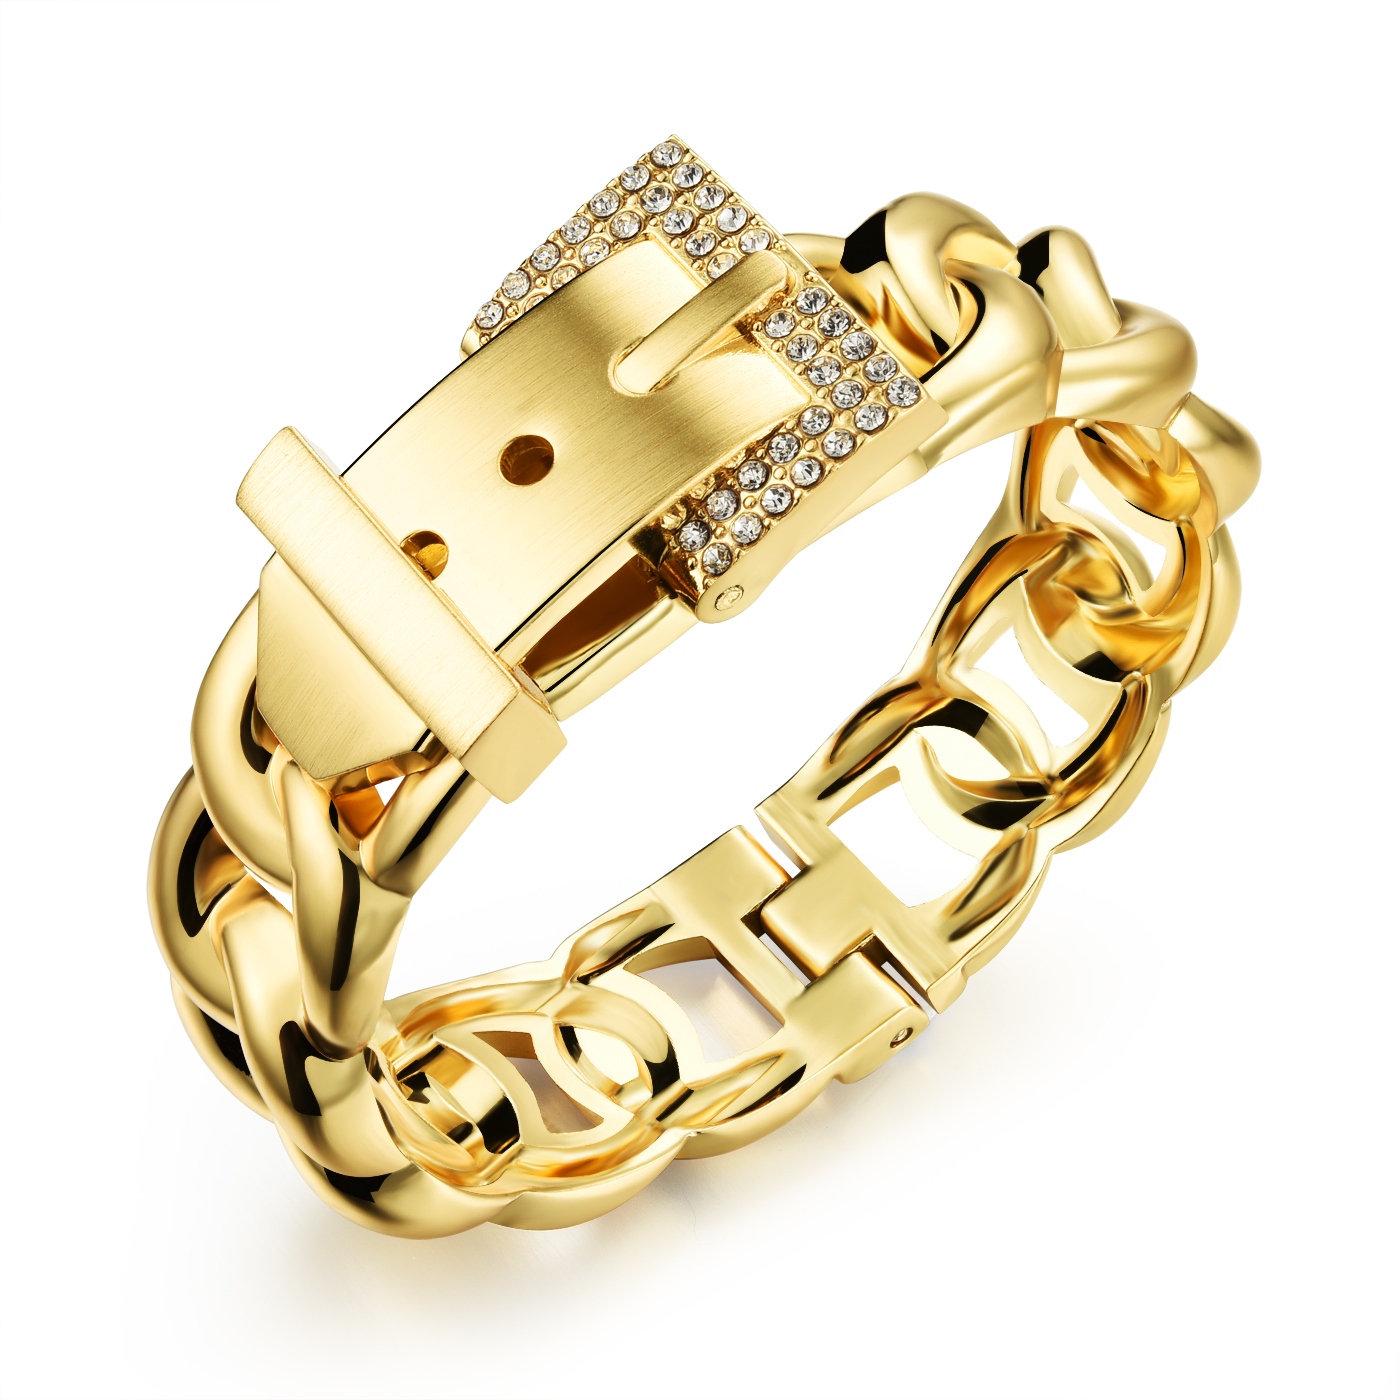 bracelet items latest gold with designs lady ladies price woman